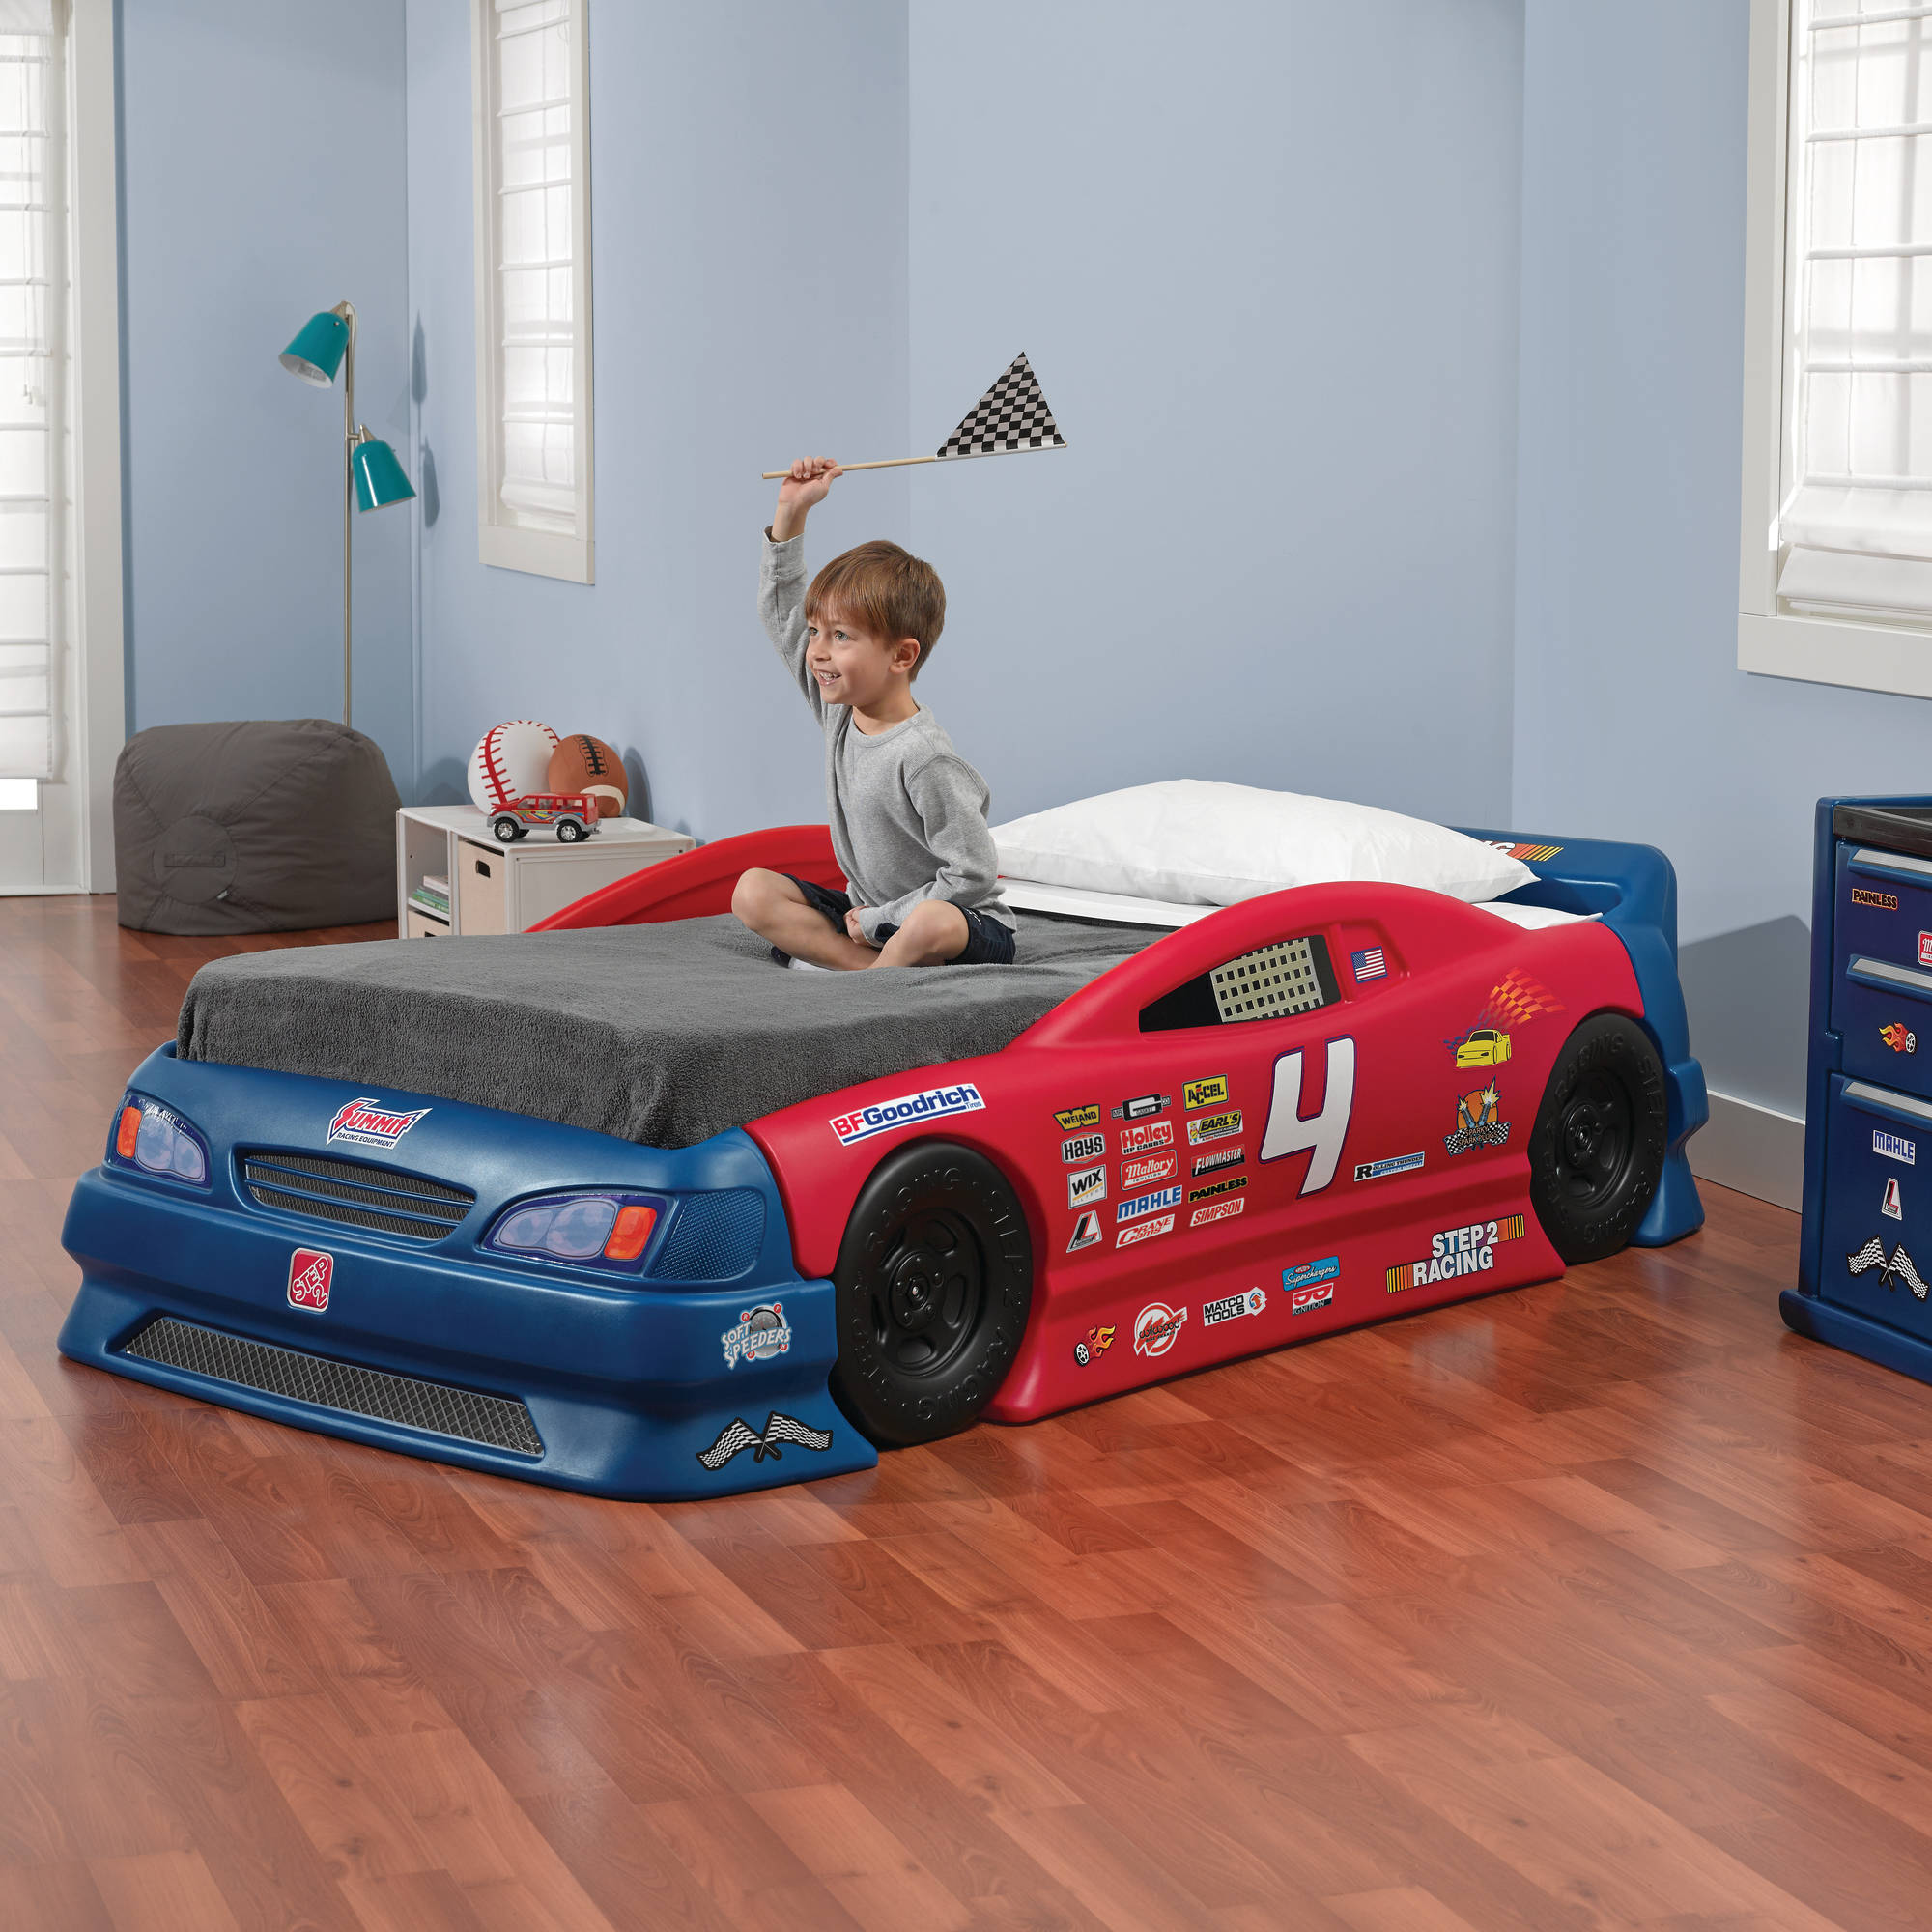 new bed buy product online kids for race car beds red racer